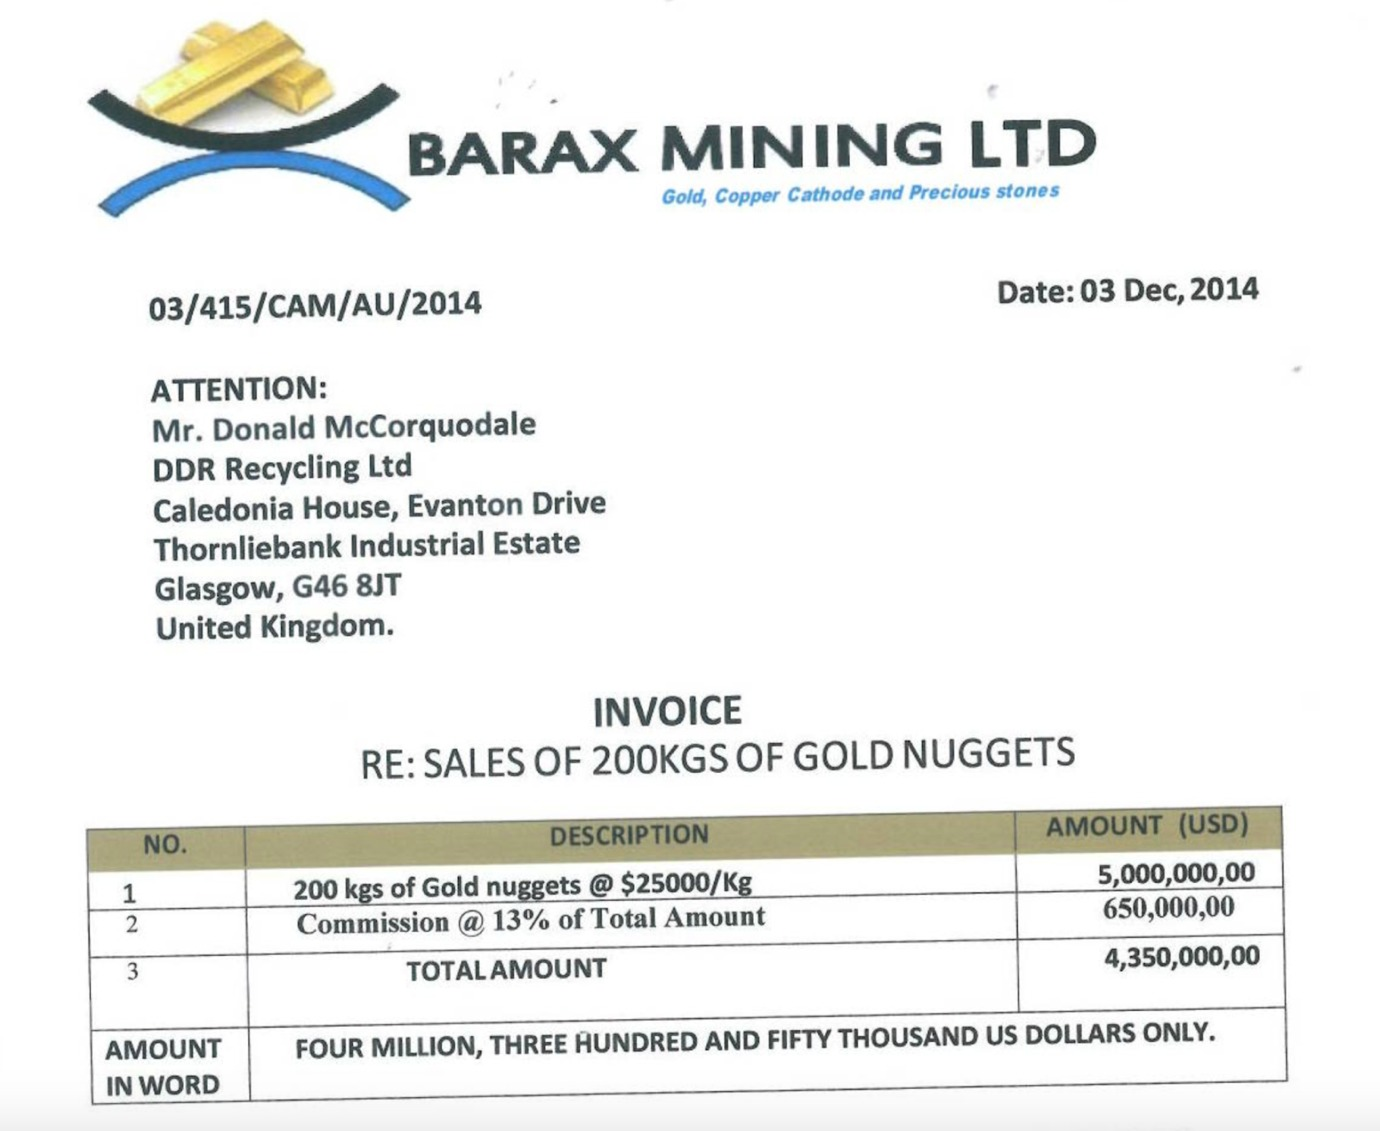 Barax Mining Ltd invoice to DDR Recycling